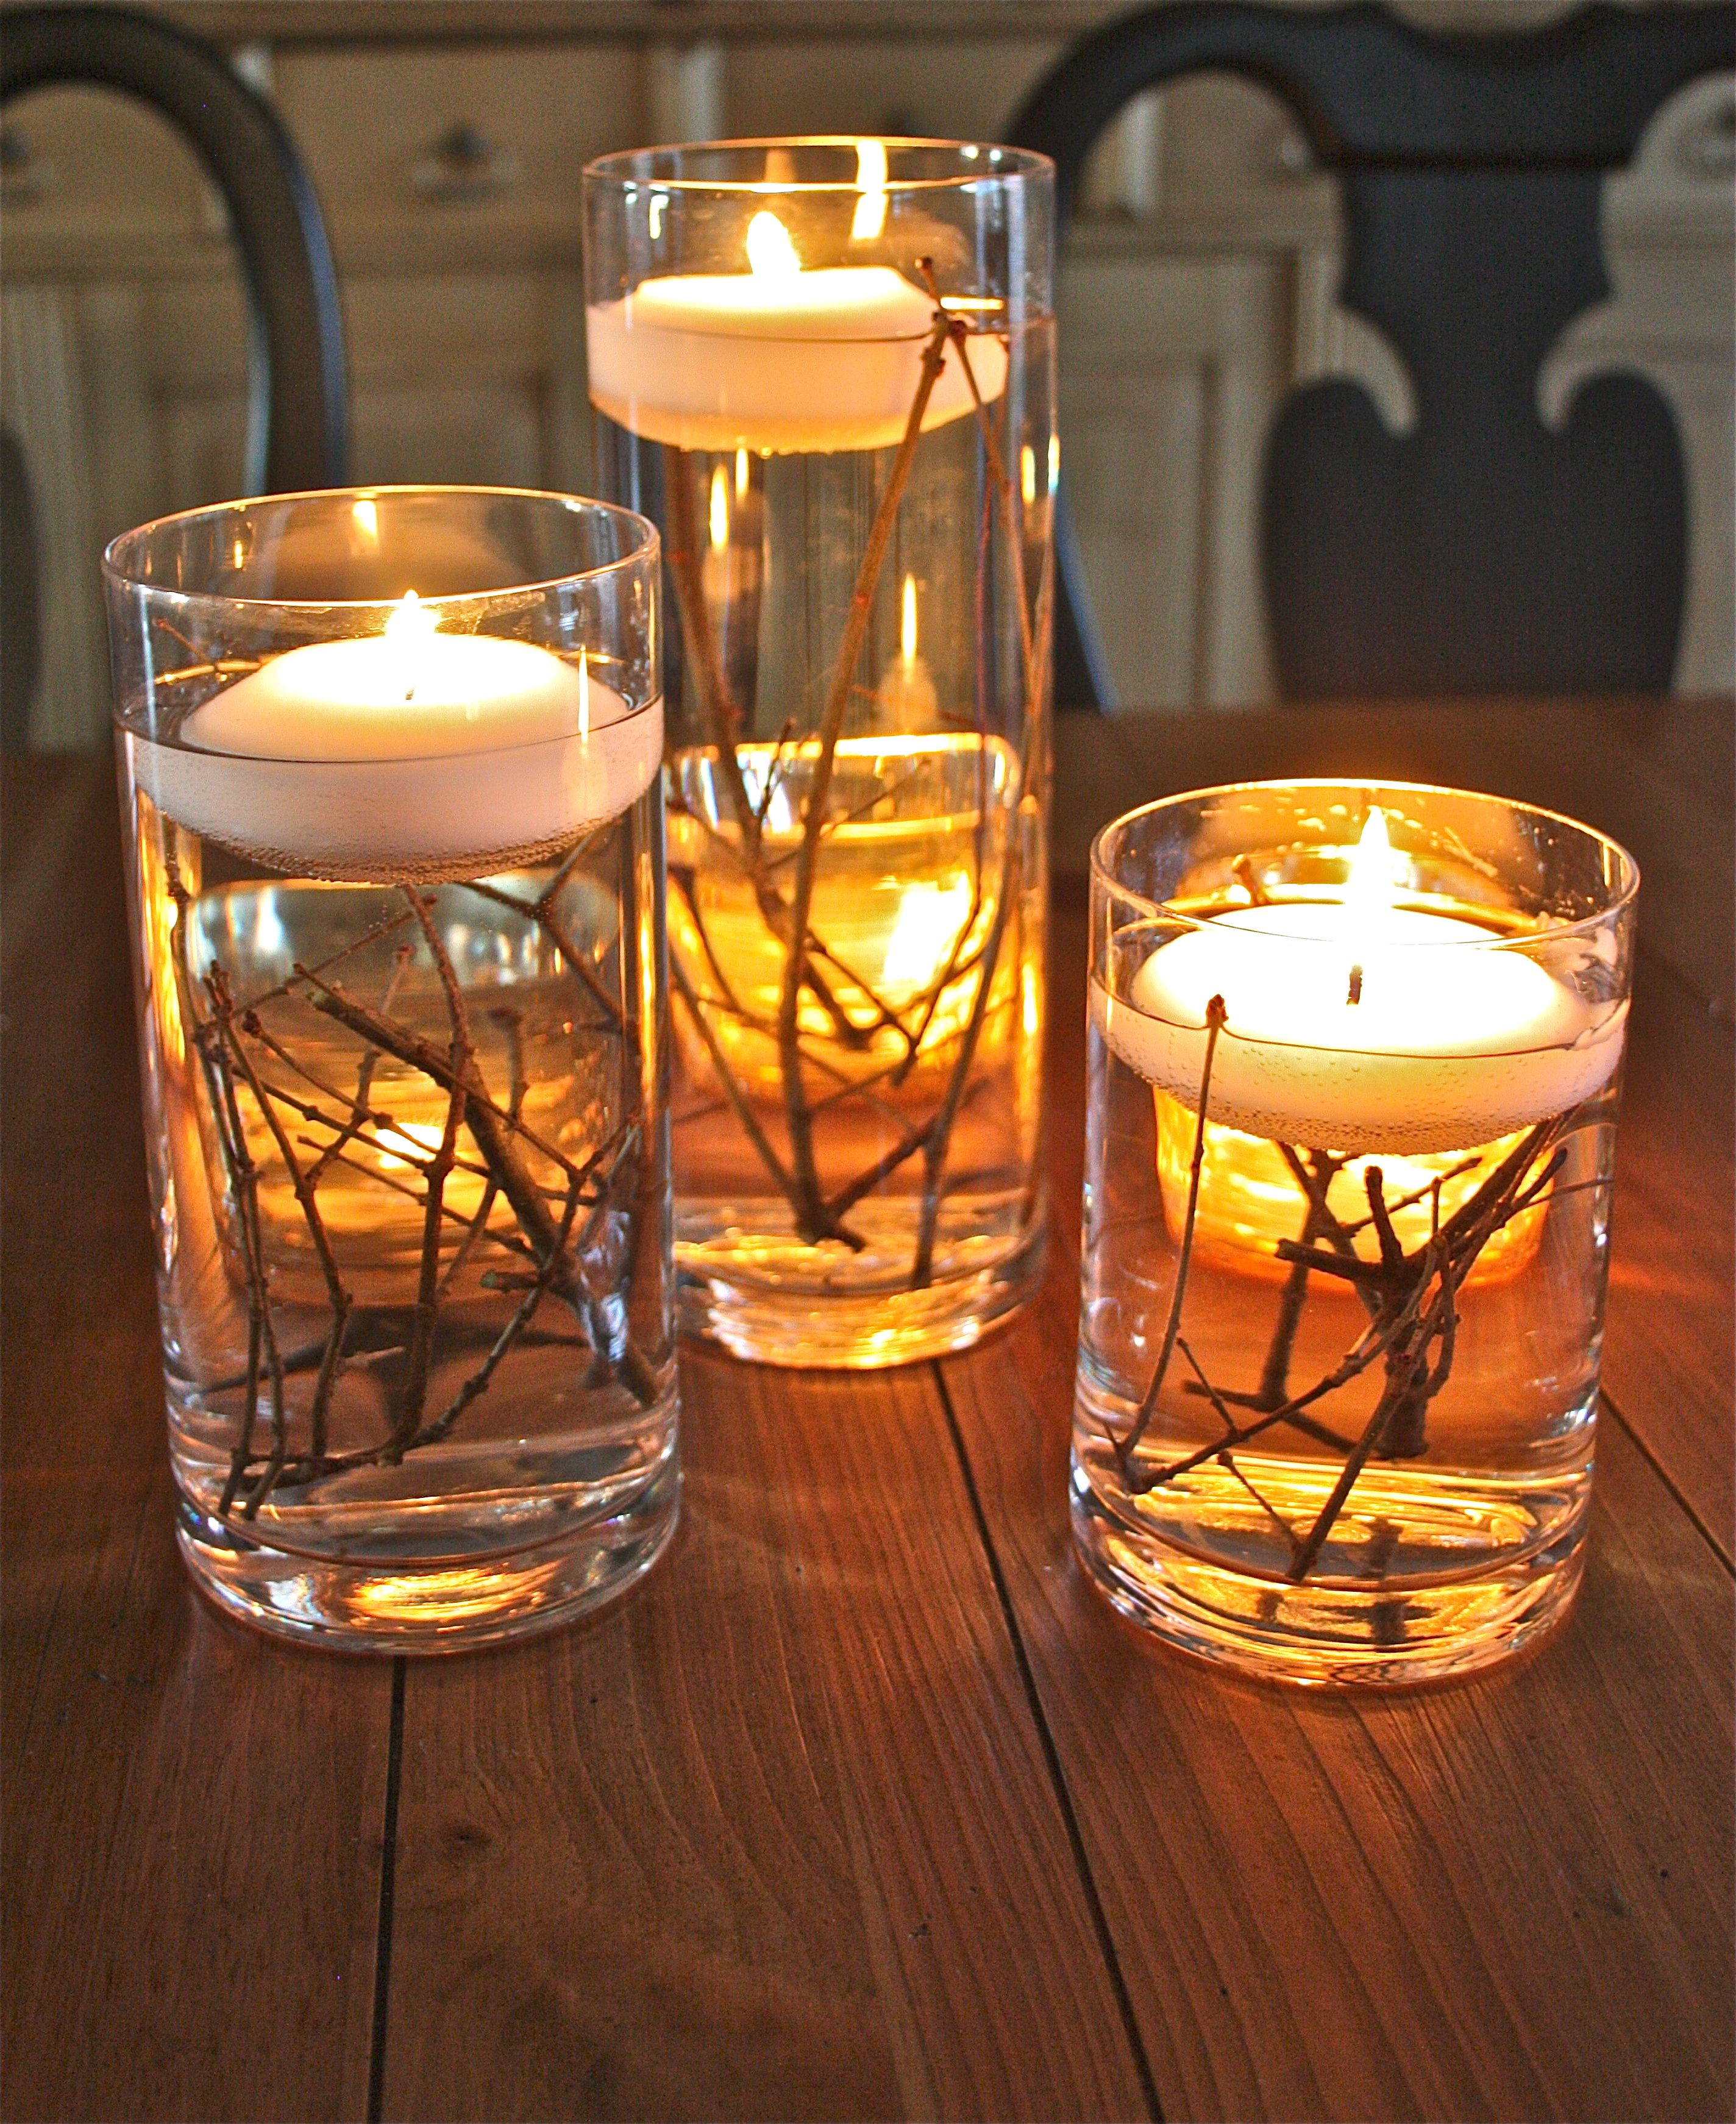 Candles With Gifts Inside Bringing The Outdoors In Floating Candles Wedding And Craft